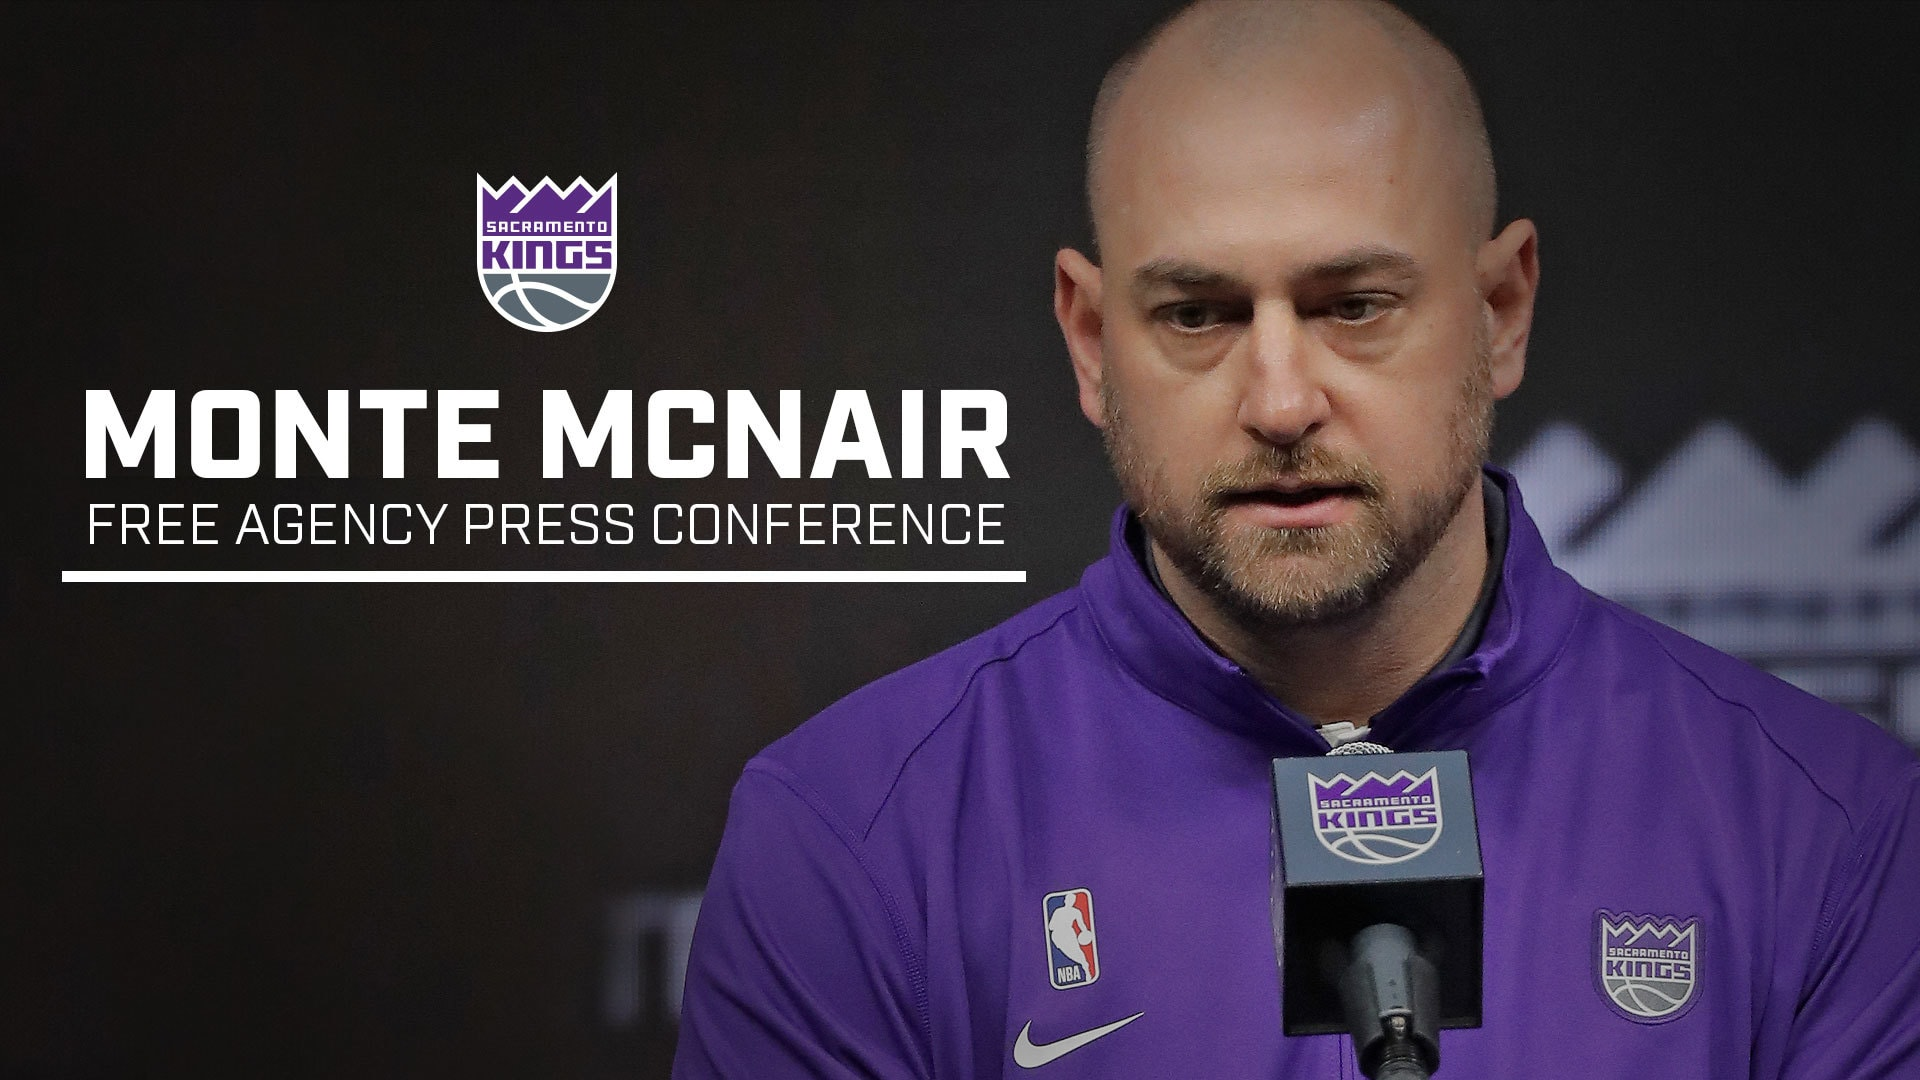 Monte McNair Press Conference | 11.30.20